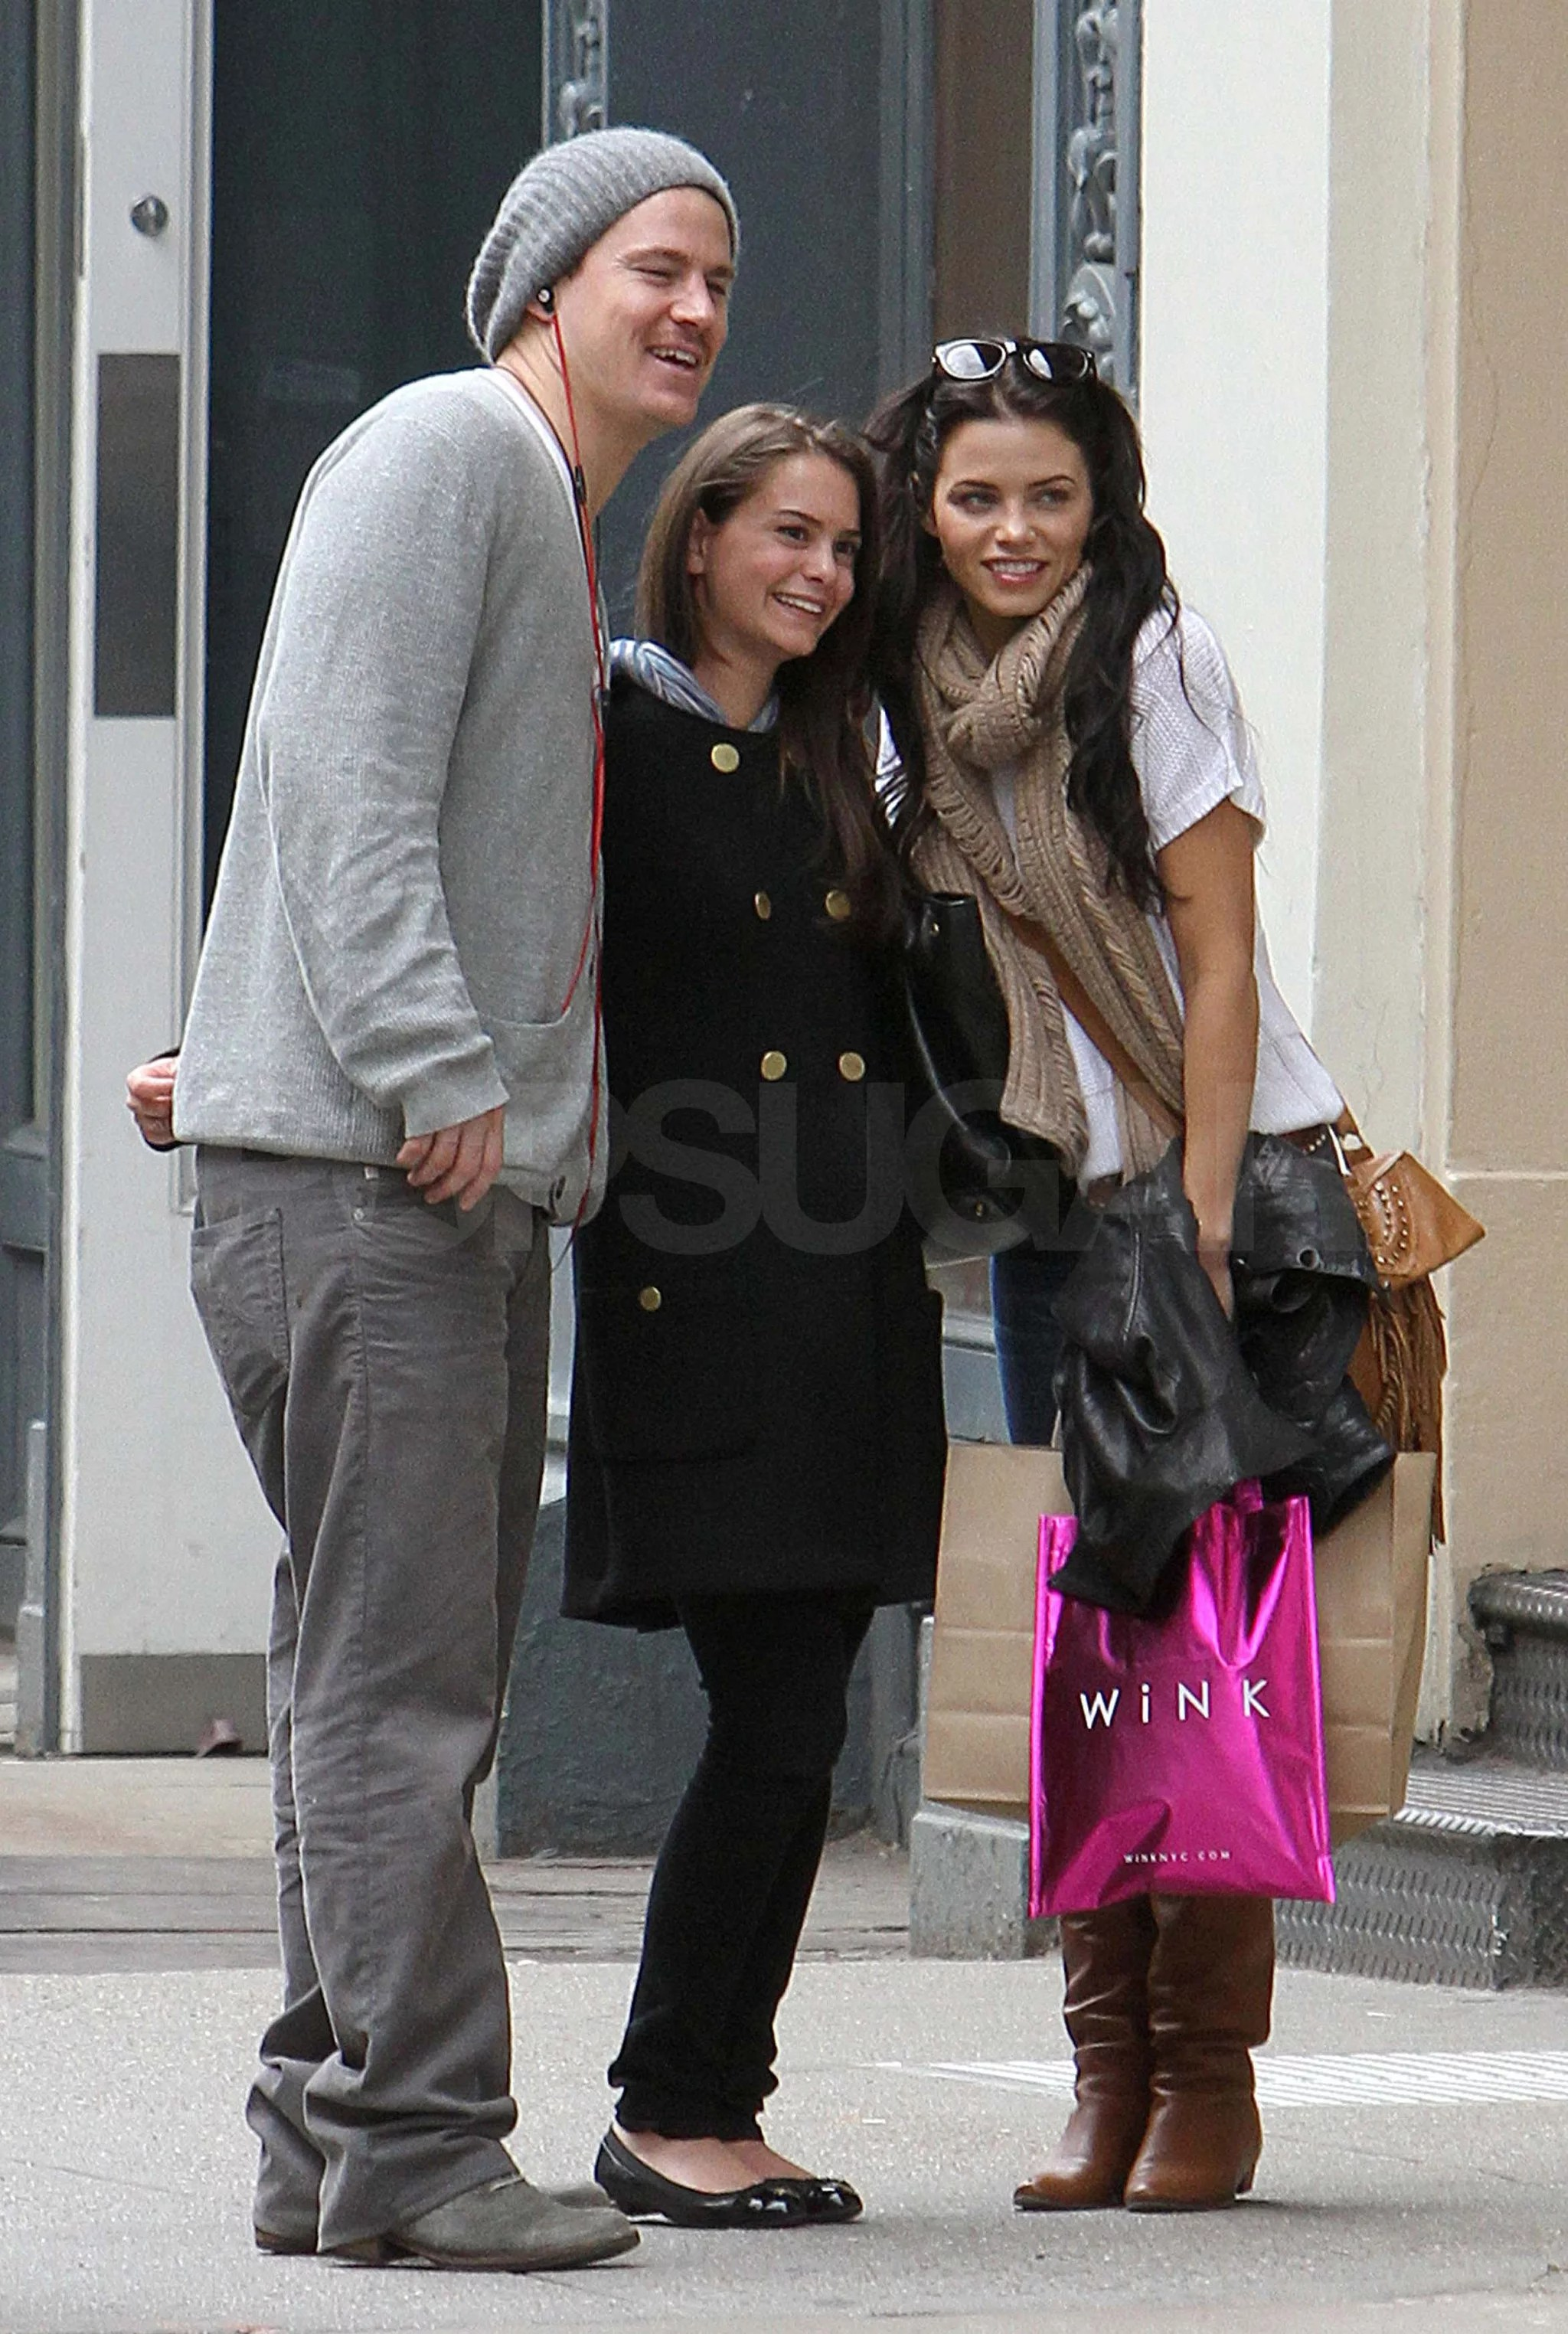 Pictures Of Channing Tatum And Jenna Dewan Shopping In